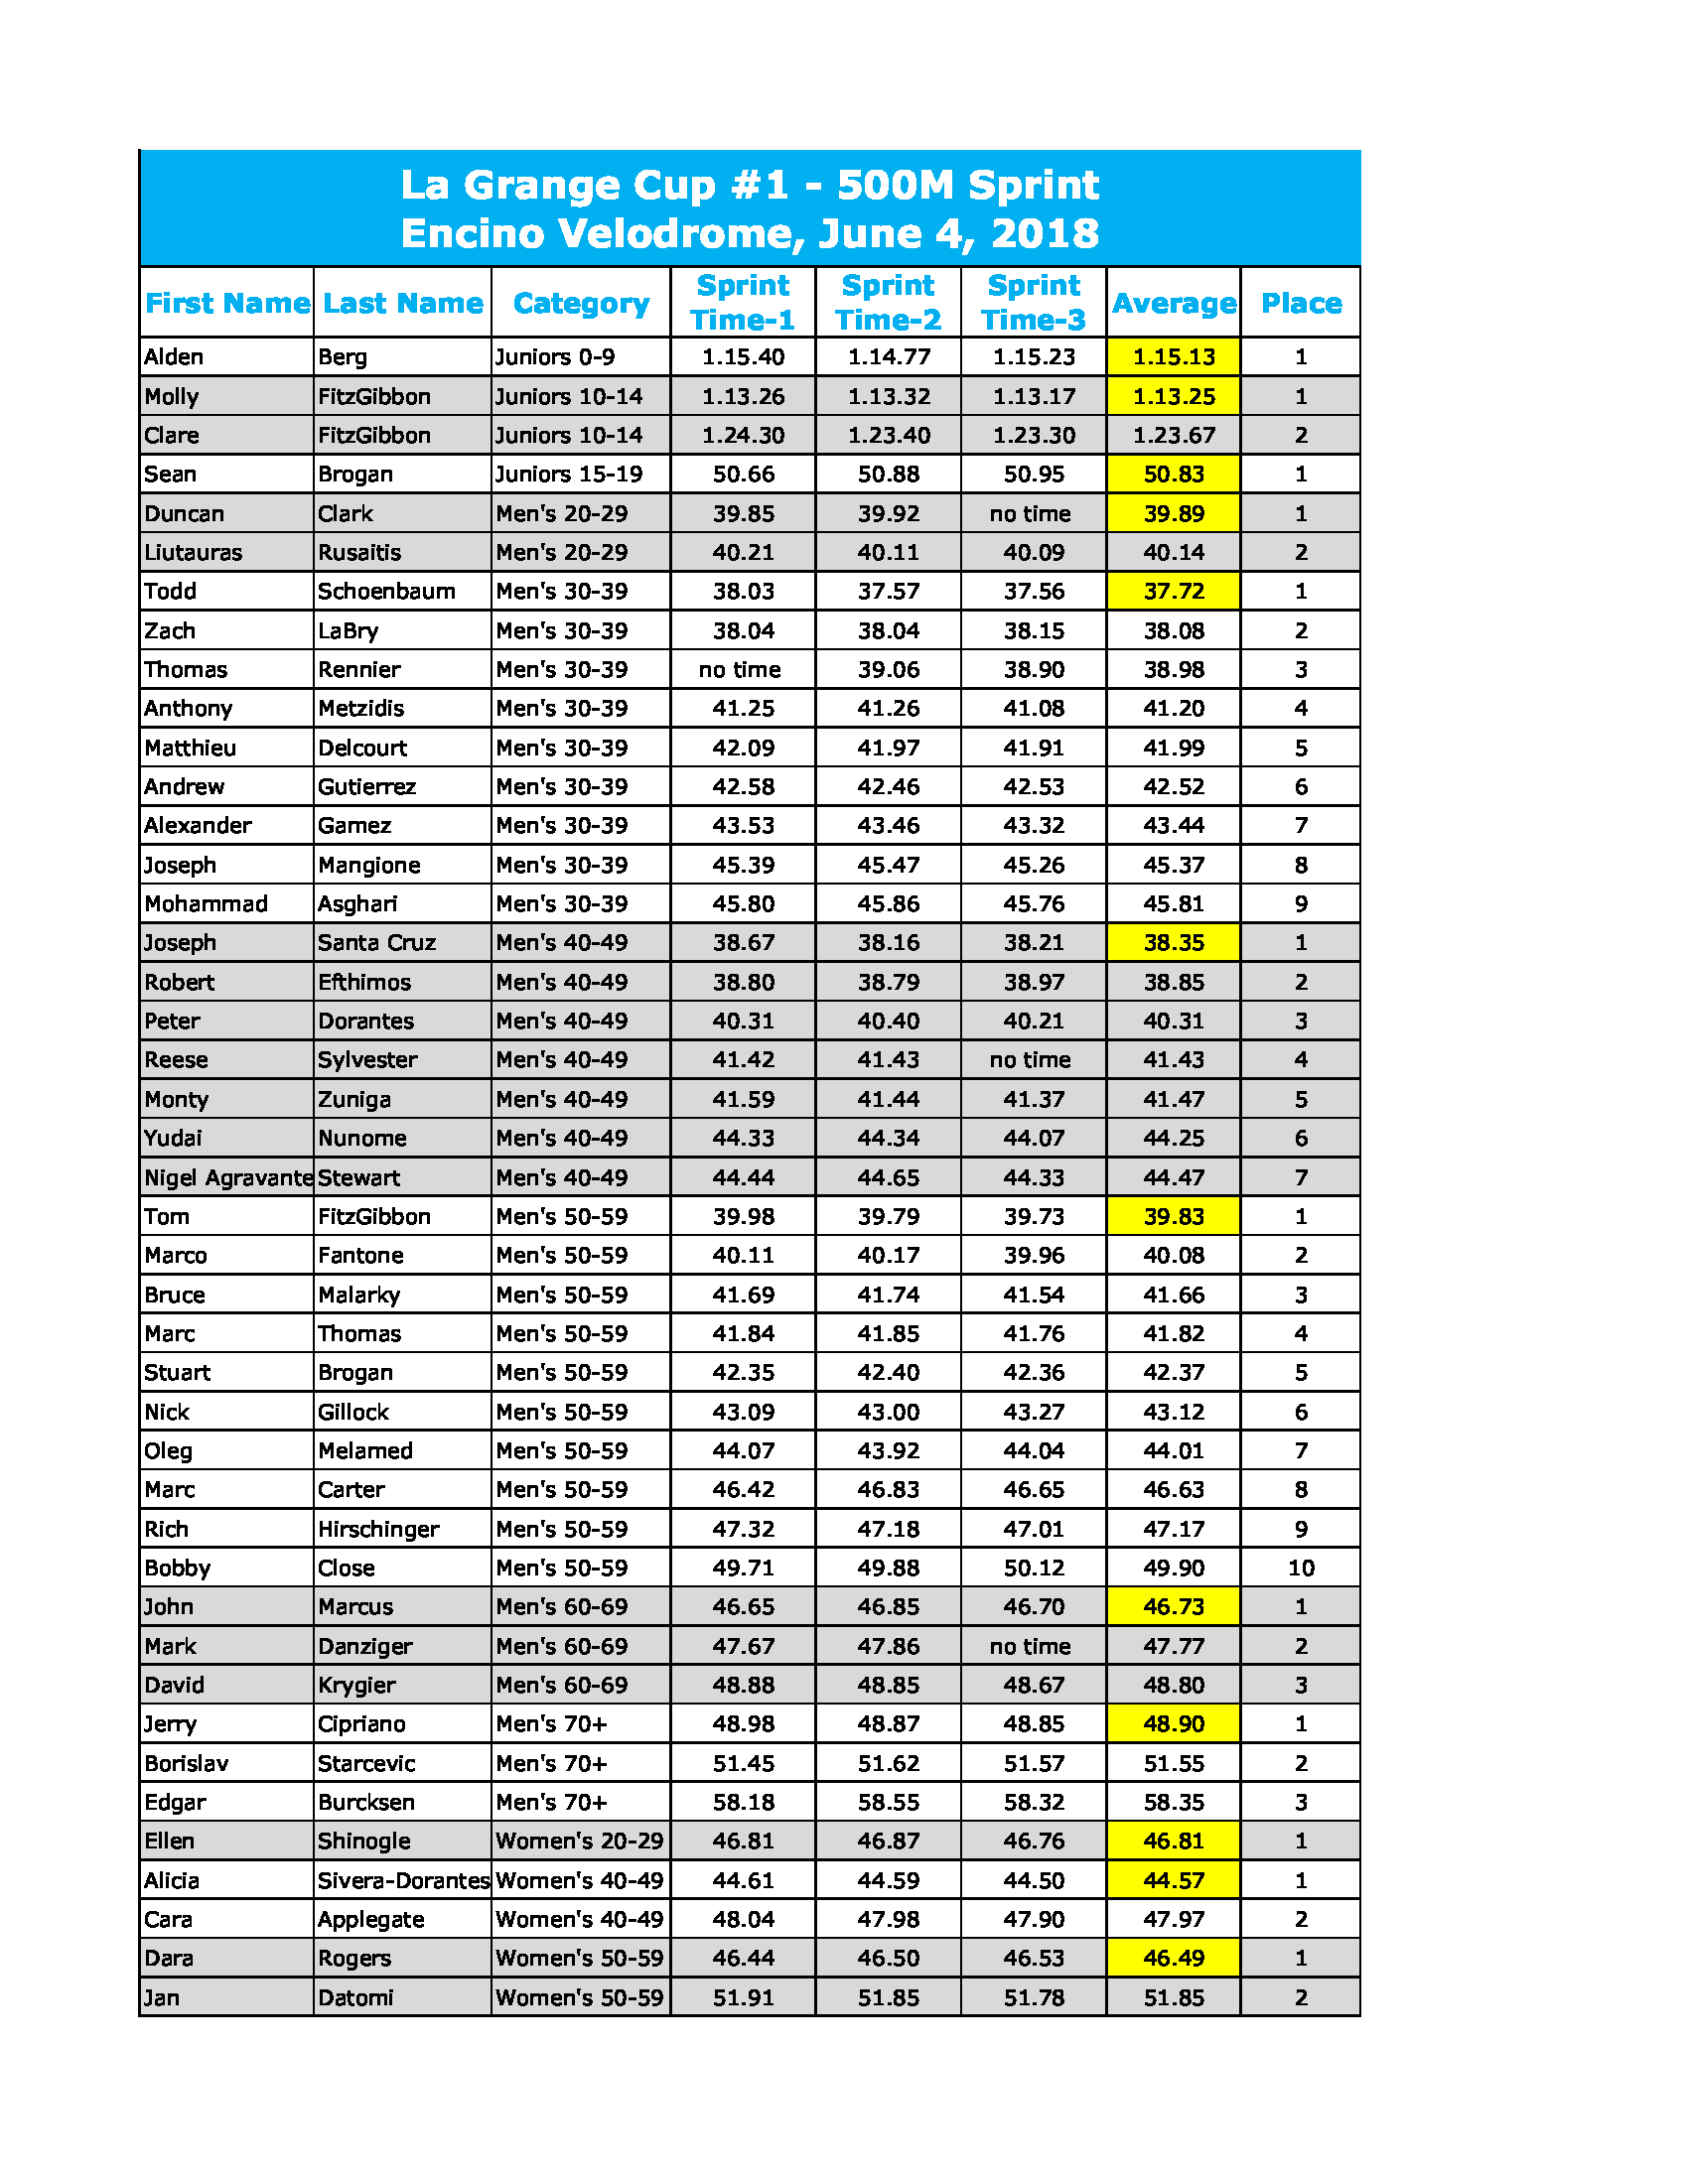 LG Cup #1 Sprint Results (6-3-18)_Page_1.png